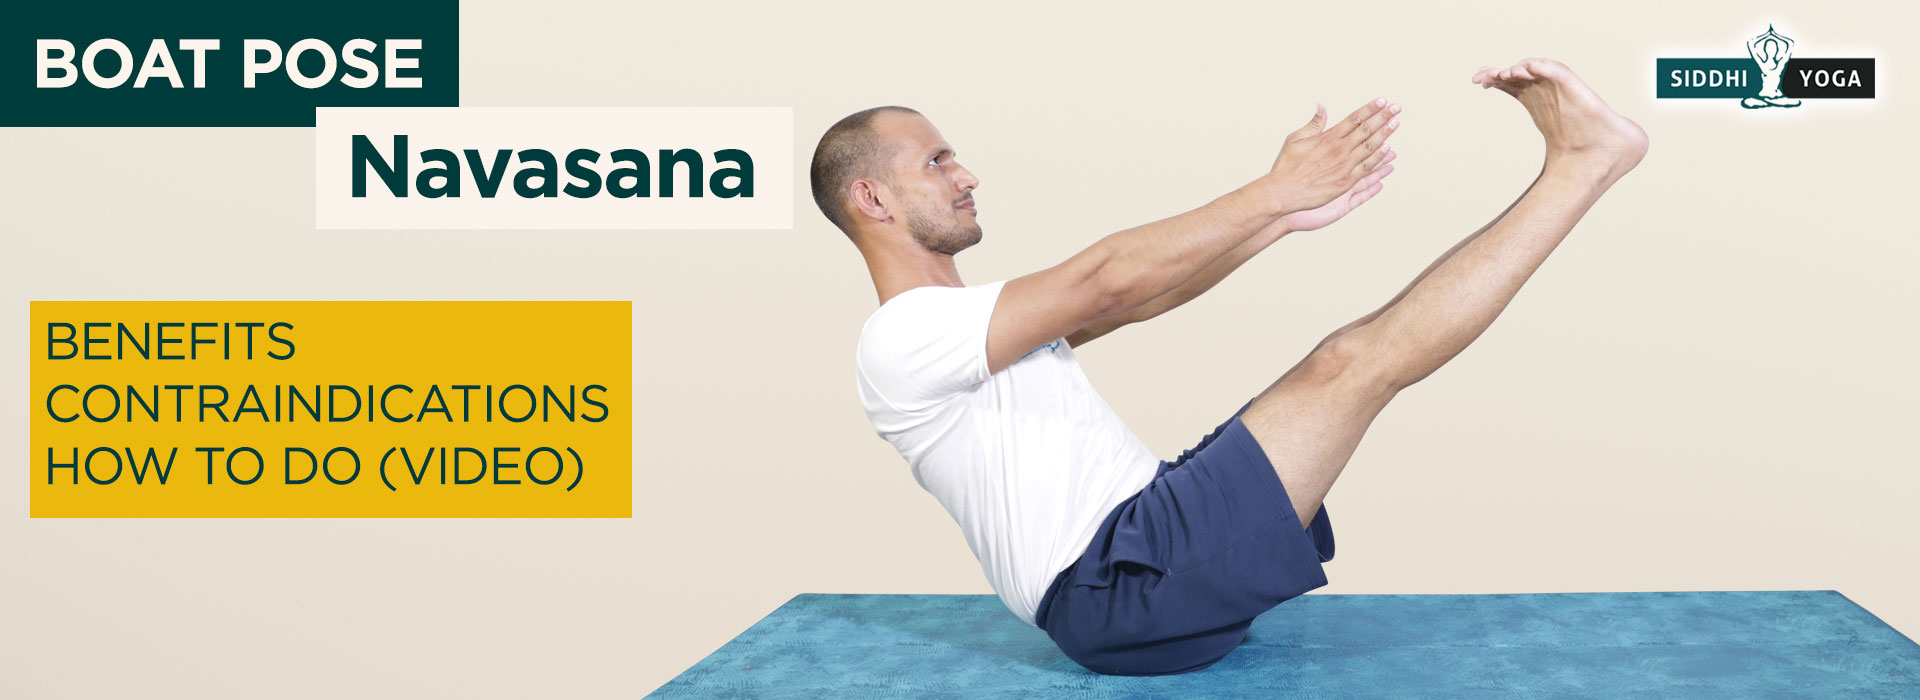 Navasana Boat Pose Benefits How To Do Contraindications